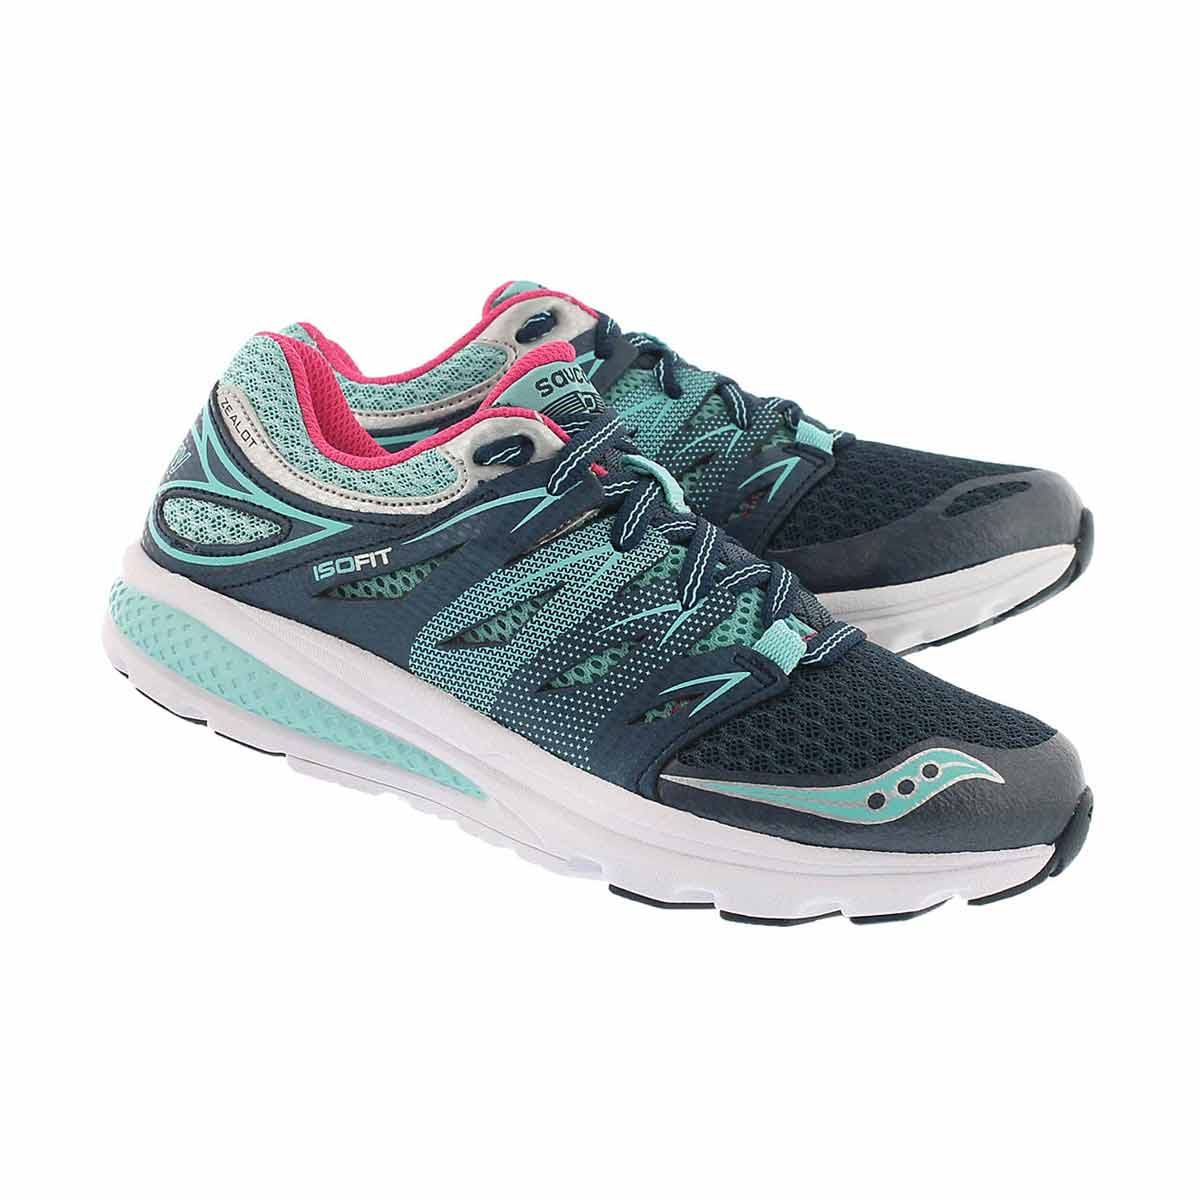 Grls Zealot 2 nvy lace up running shoe